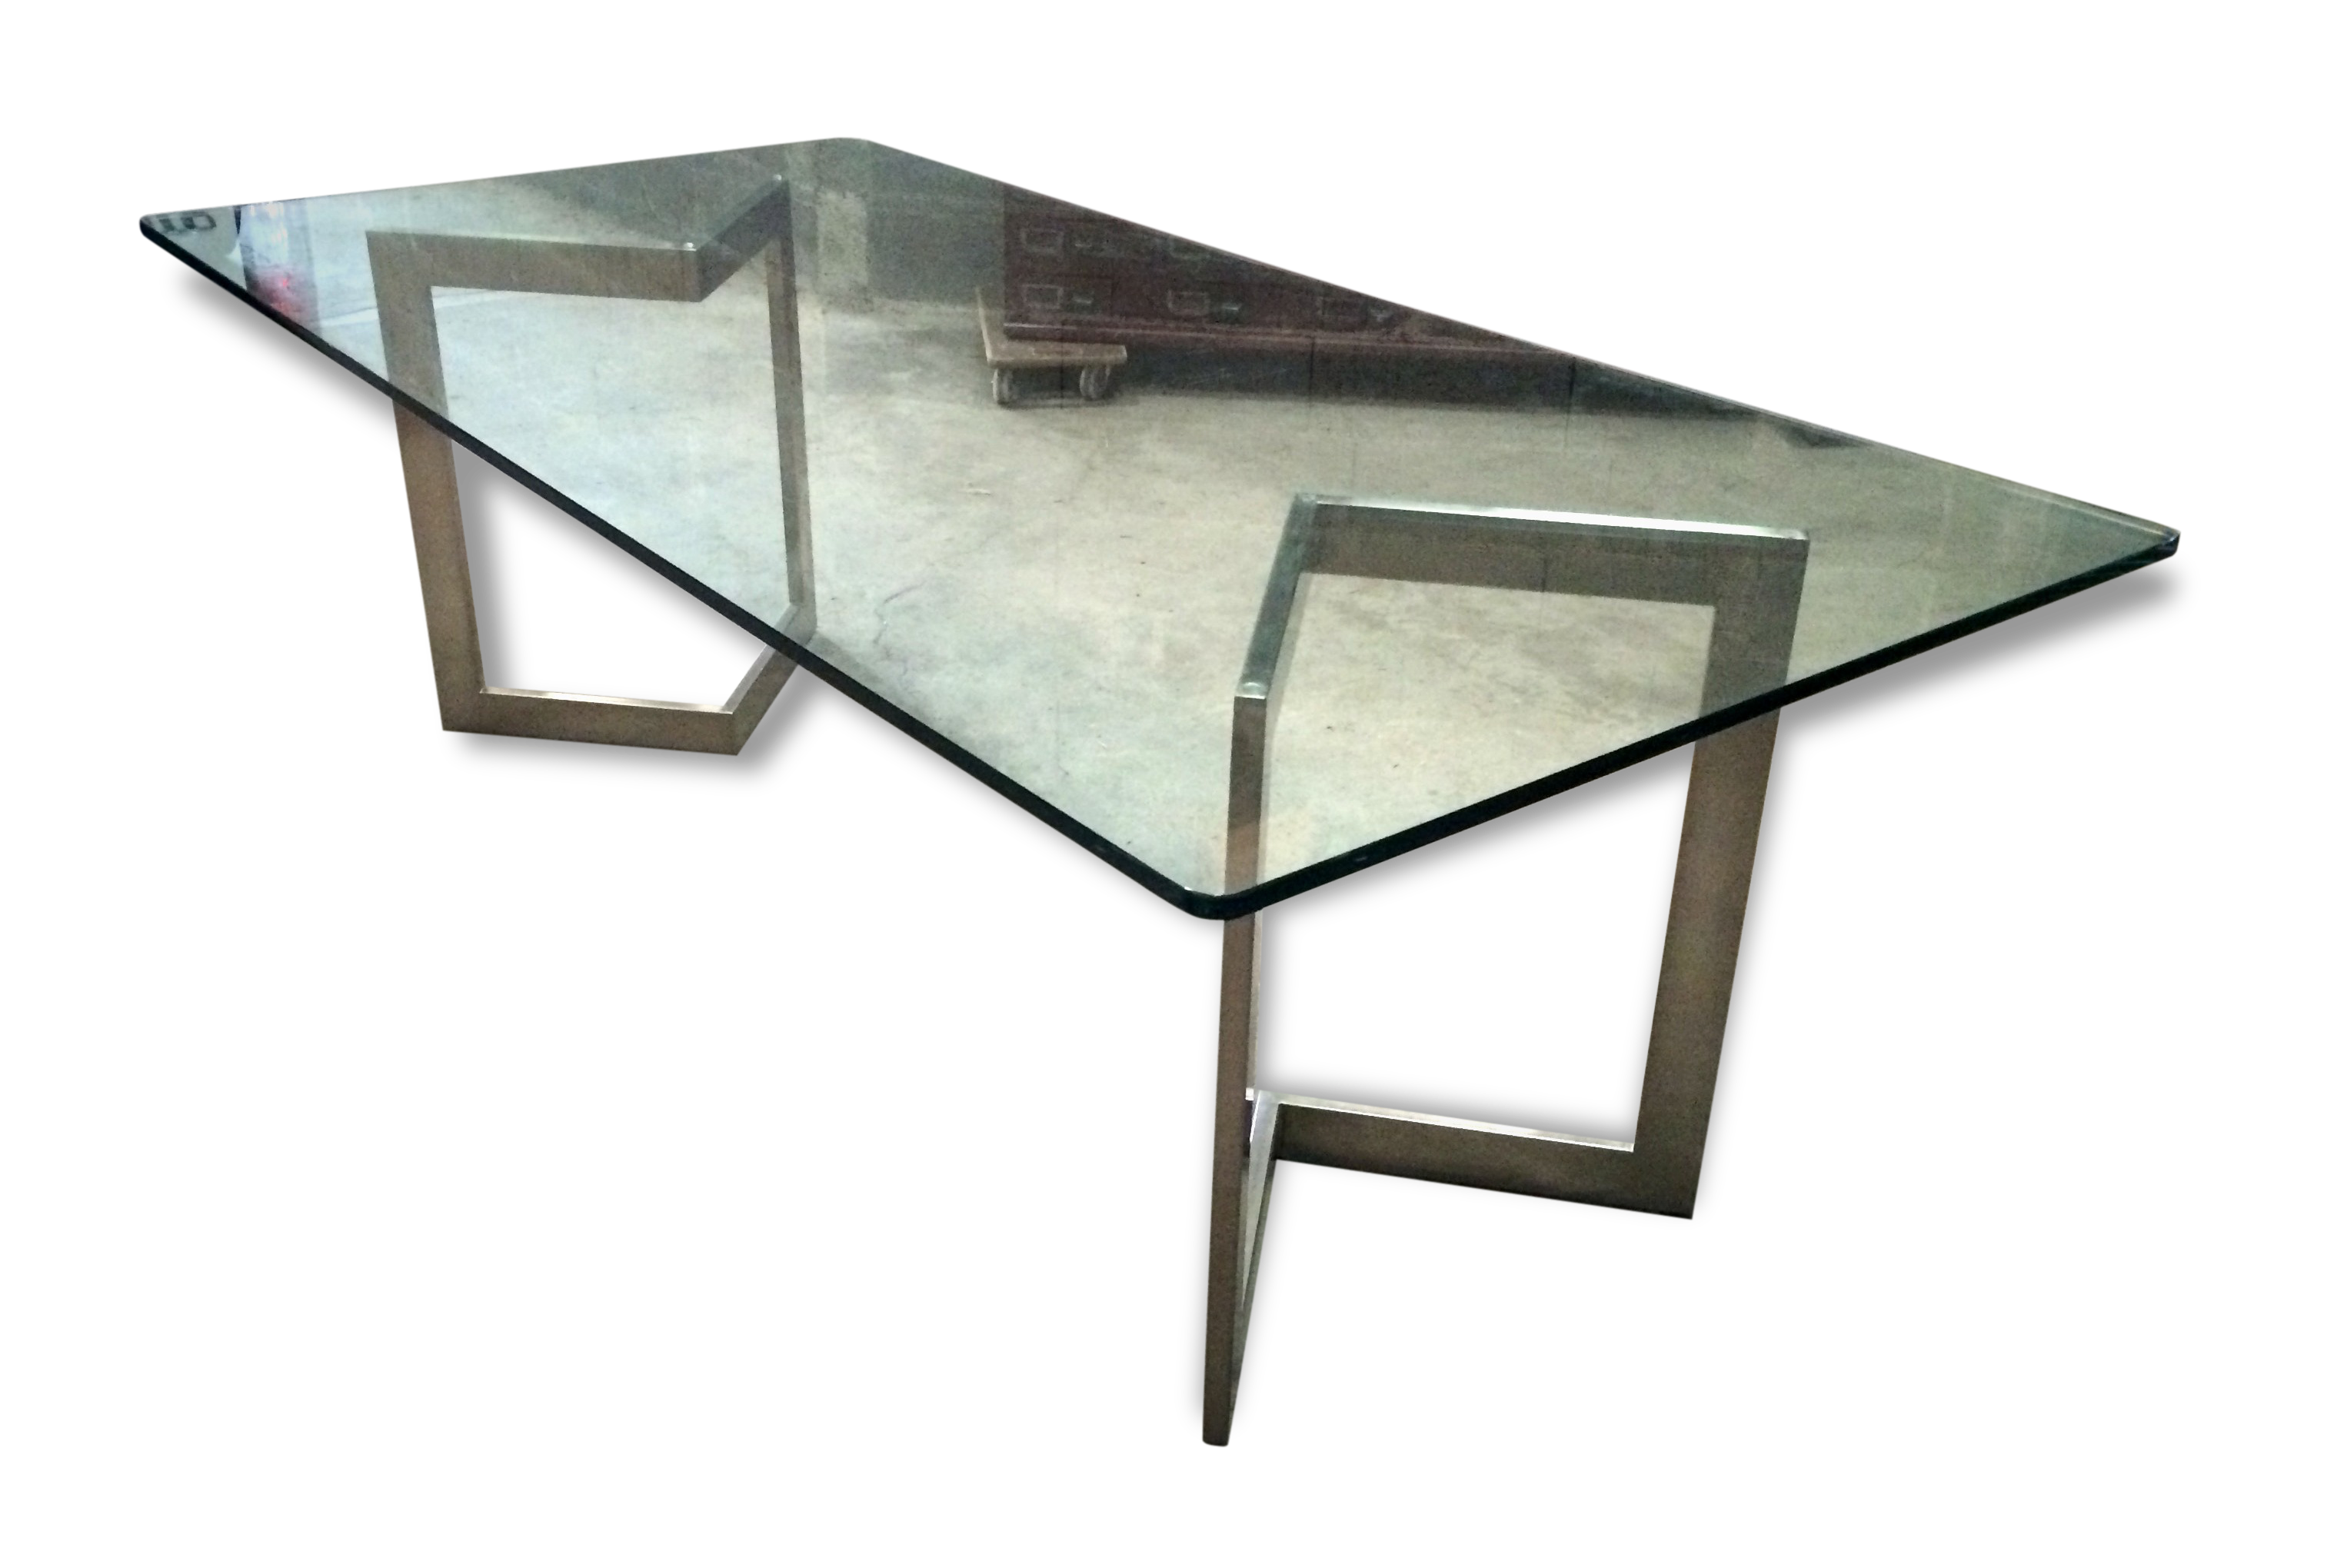 Table de salle a manger originale fashion designs - Table en verre design salle a manger ...